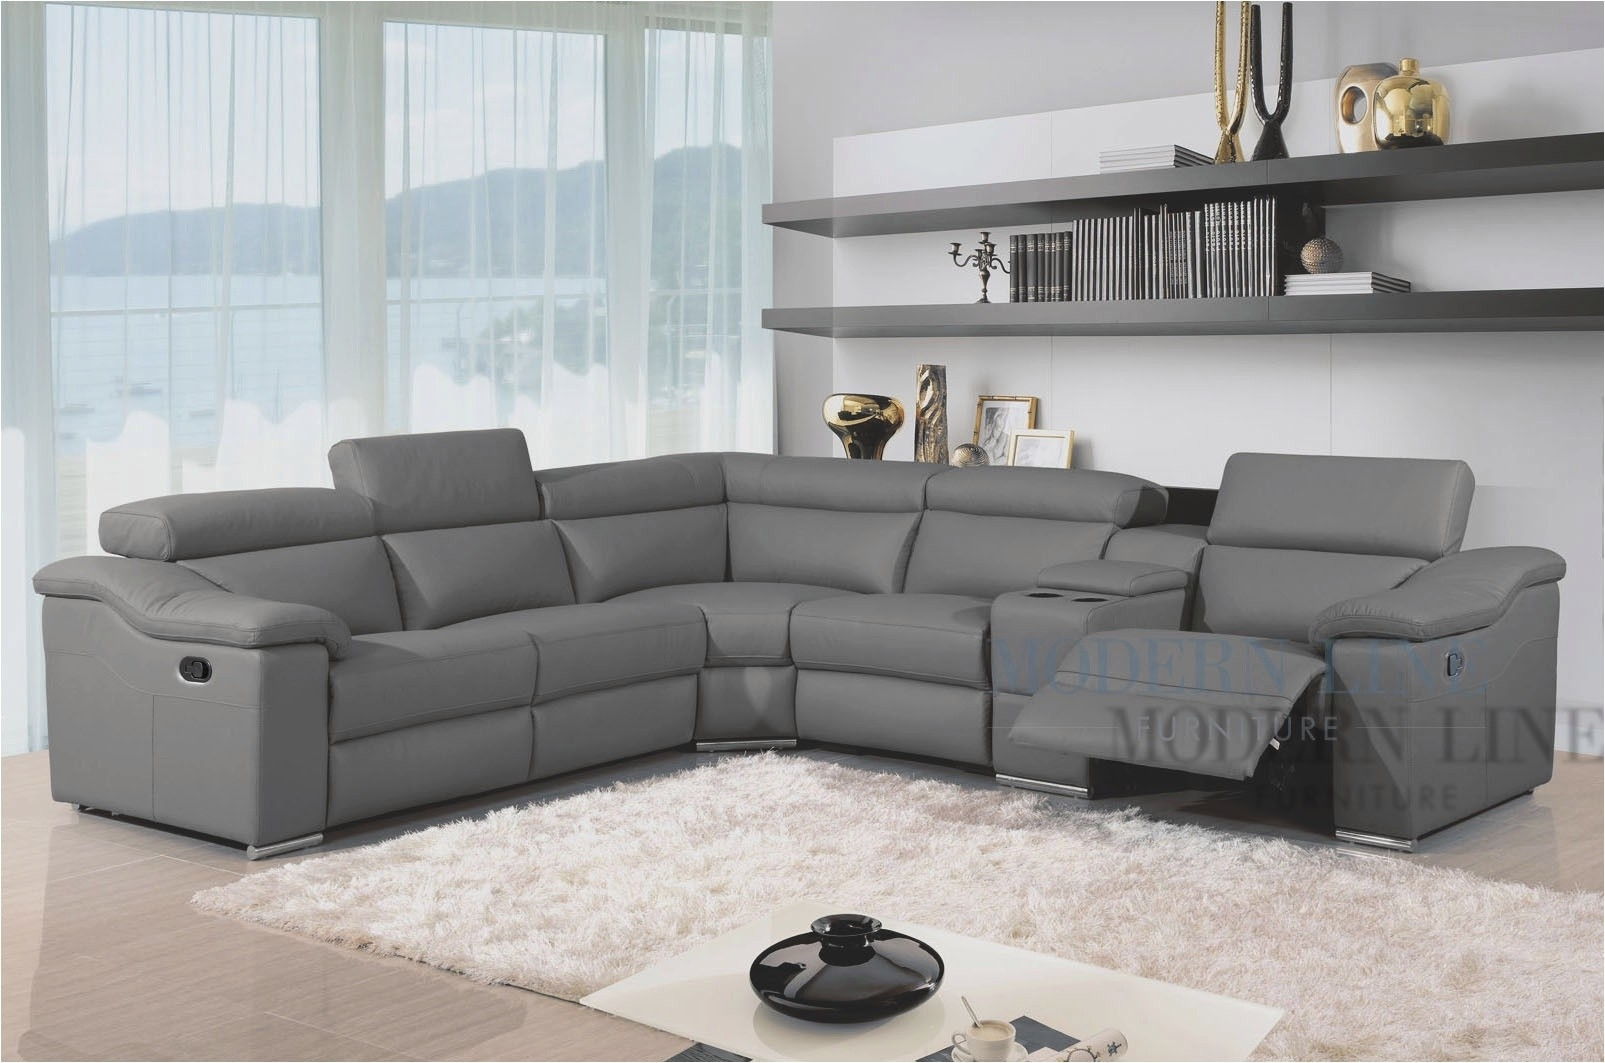 Grey Leather Reclining Sectional Clyde 3 Piece Power W Pwr Hdrst Regarding Clyde Grey Leather 3 Piece Power Reclining Sectionals With Pwr Hdrst & Usb (Image 11 of 25)